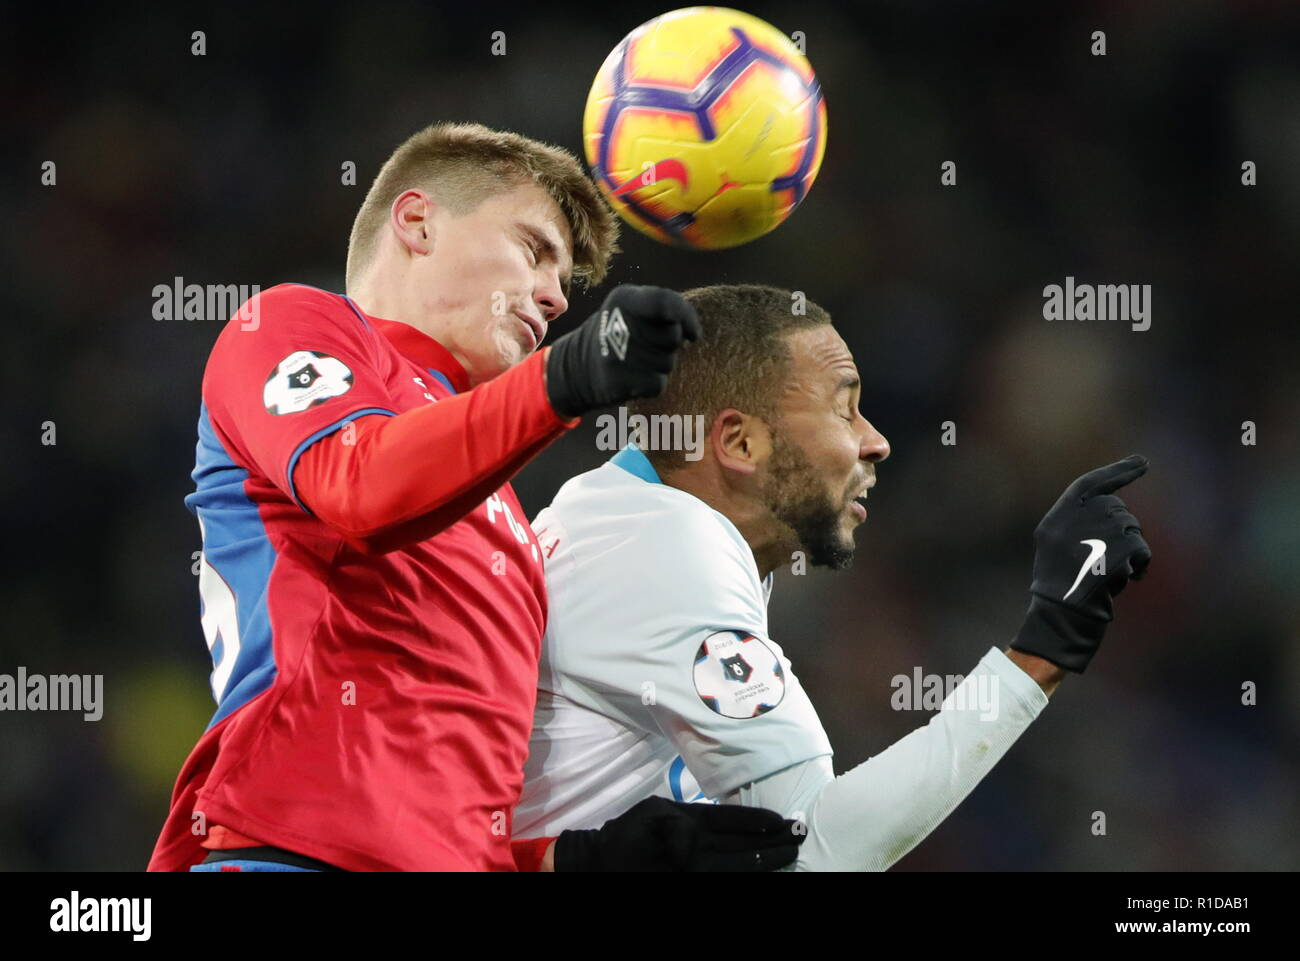 MOSCOW, RUSSIA – NOVERMBER 11, 2018: Zenit St Petersburg's Hernani (R) and CSKA Moscow's Dmitry Yefremov in action in their 2018/19 Russian Premier League Round 14 football match at VEB Arena Stadium. Mikhail Japaridze/TASS - Stock Image